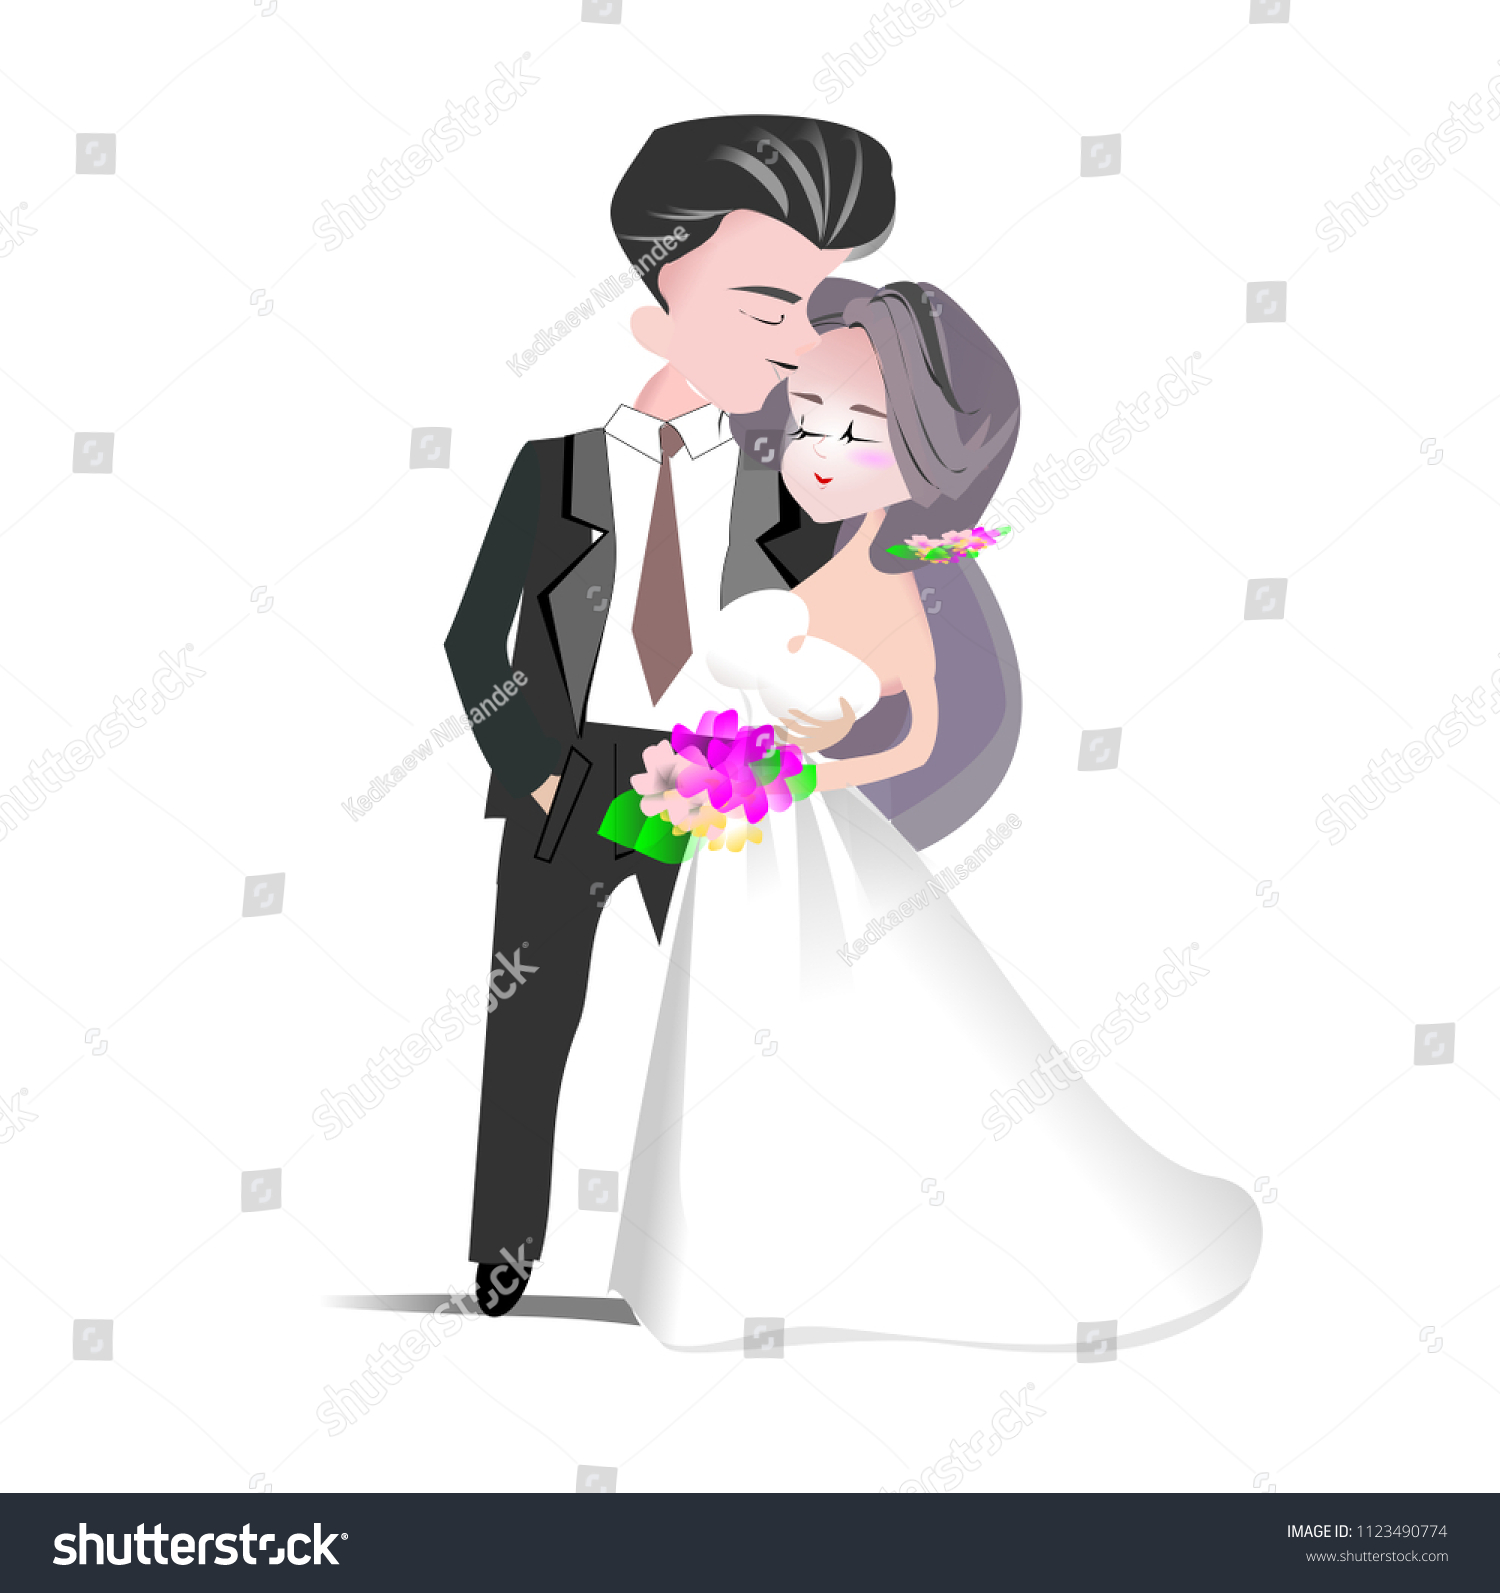 hight resolution of wedding clipart vector illustration groom and bride cartoon character man in back suit and woman in white bridal gown for invitation card template